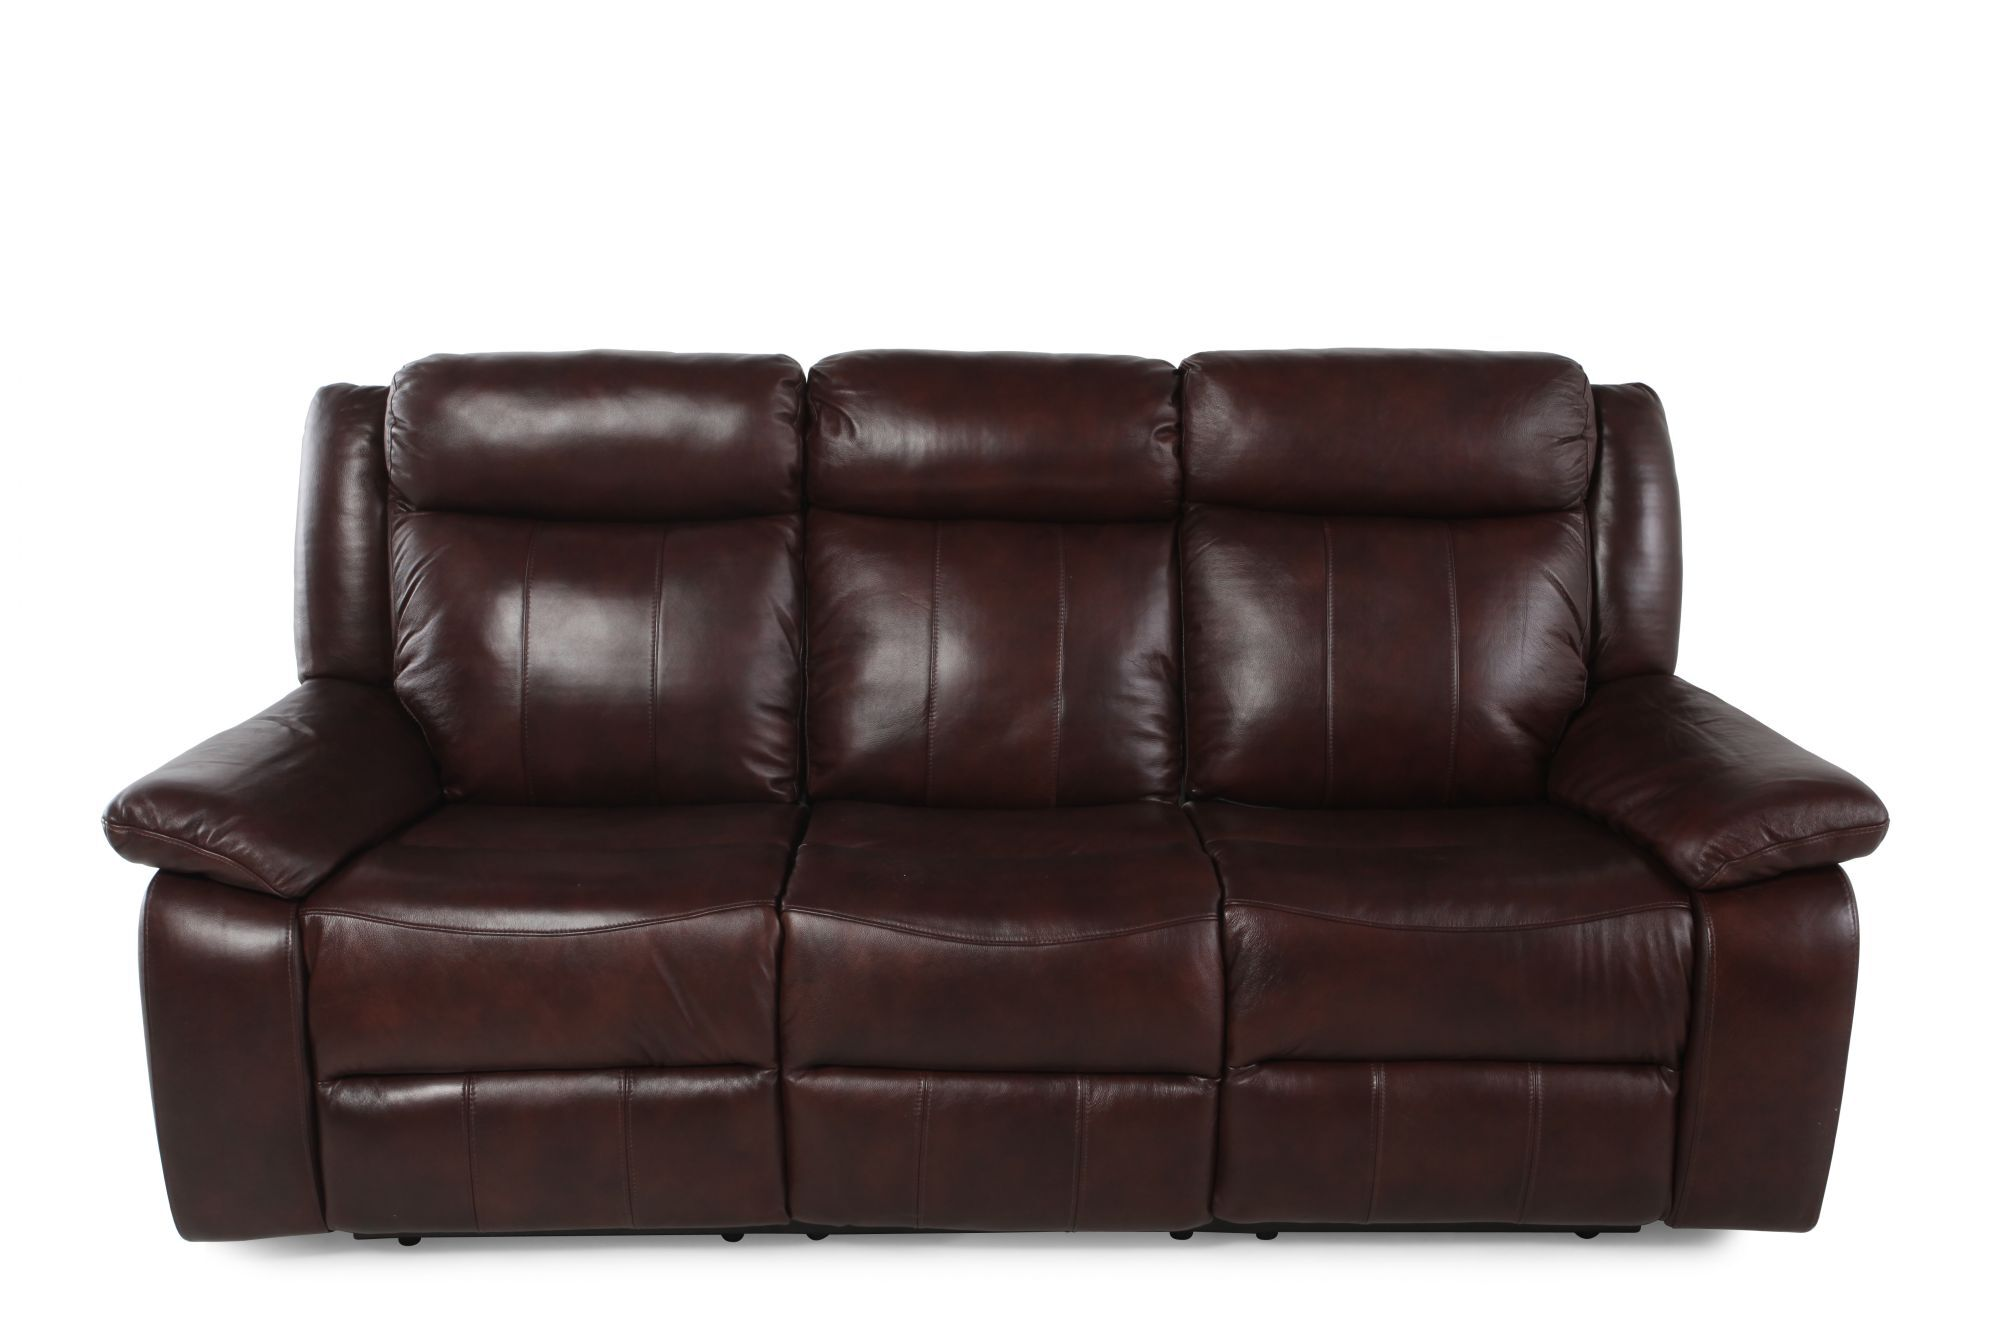 sofa reclinable 3 cuerpos ripley seattle sofascore mathis brothers leather sofas rolled arm 88